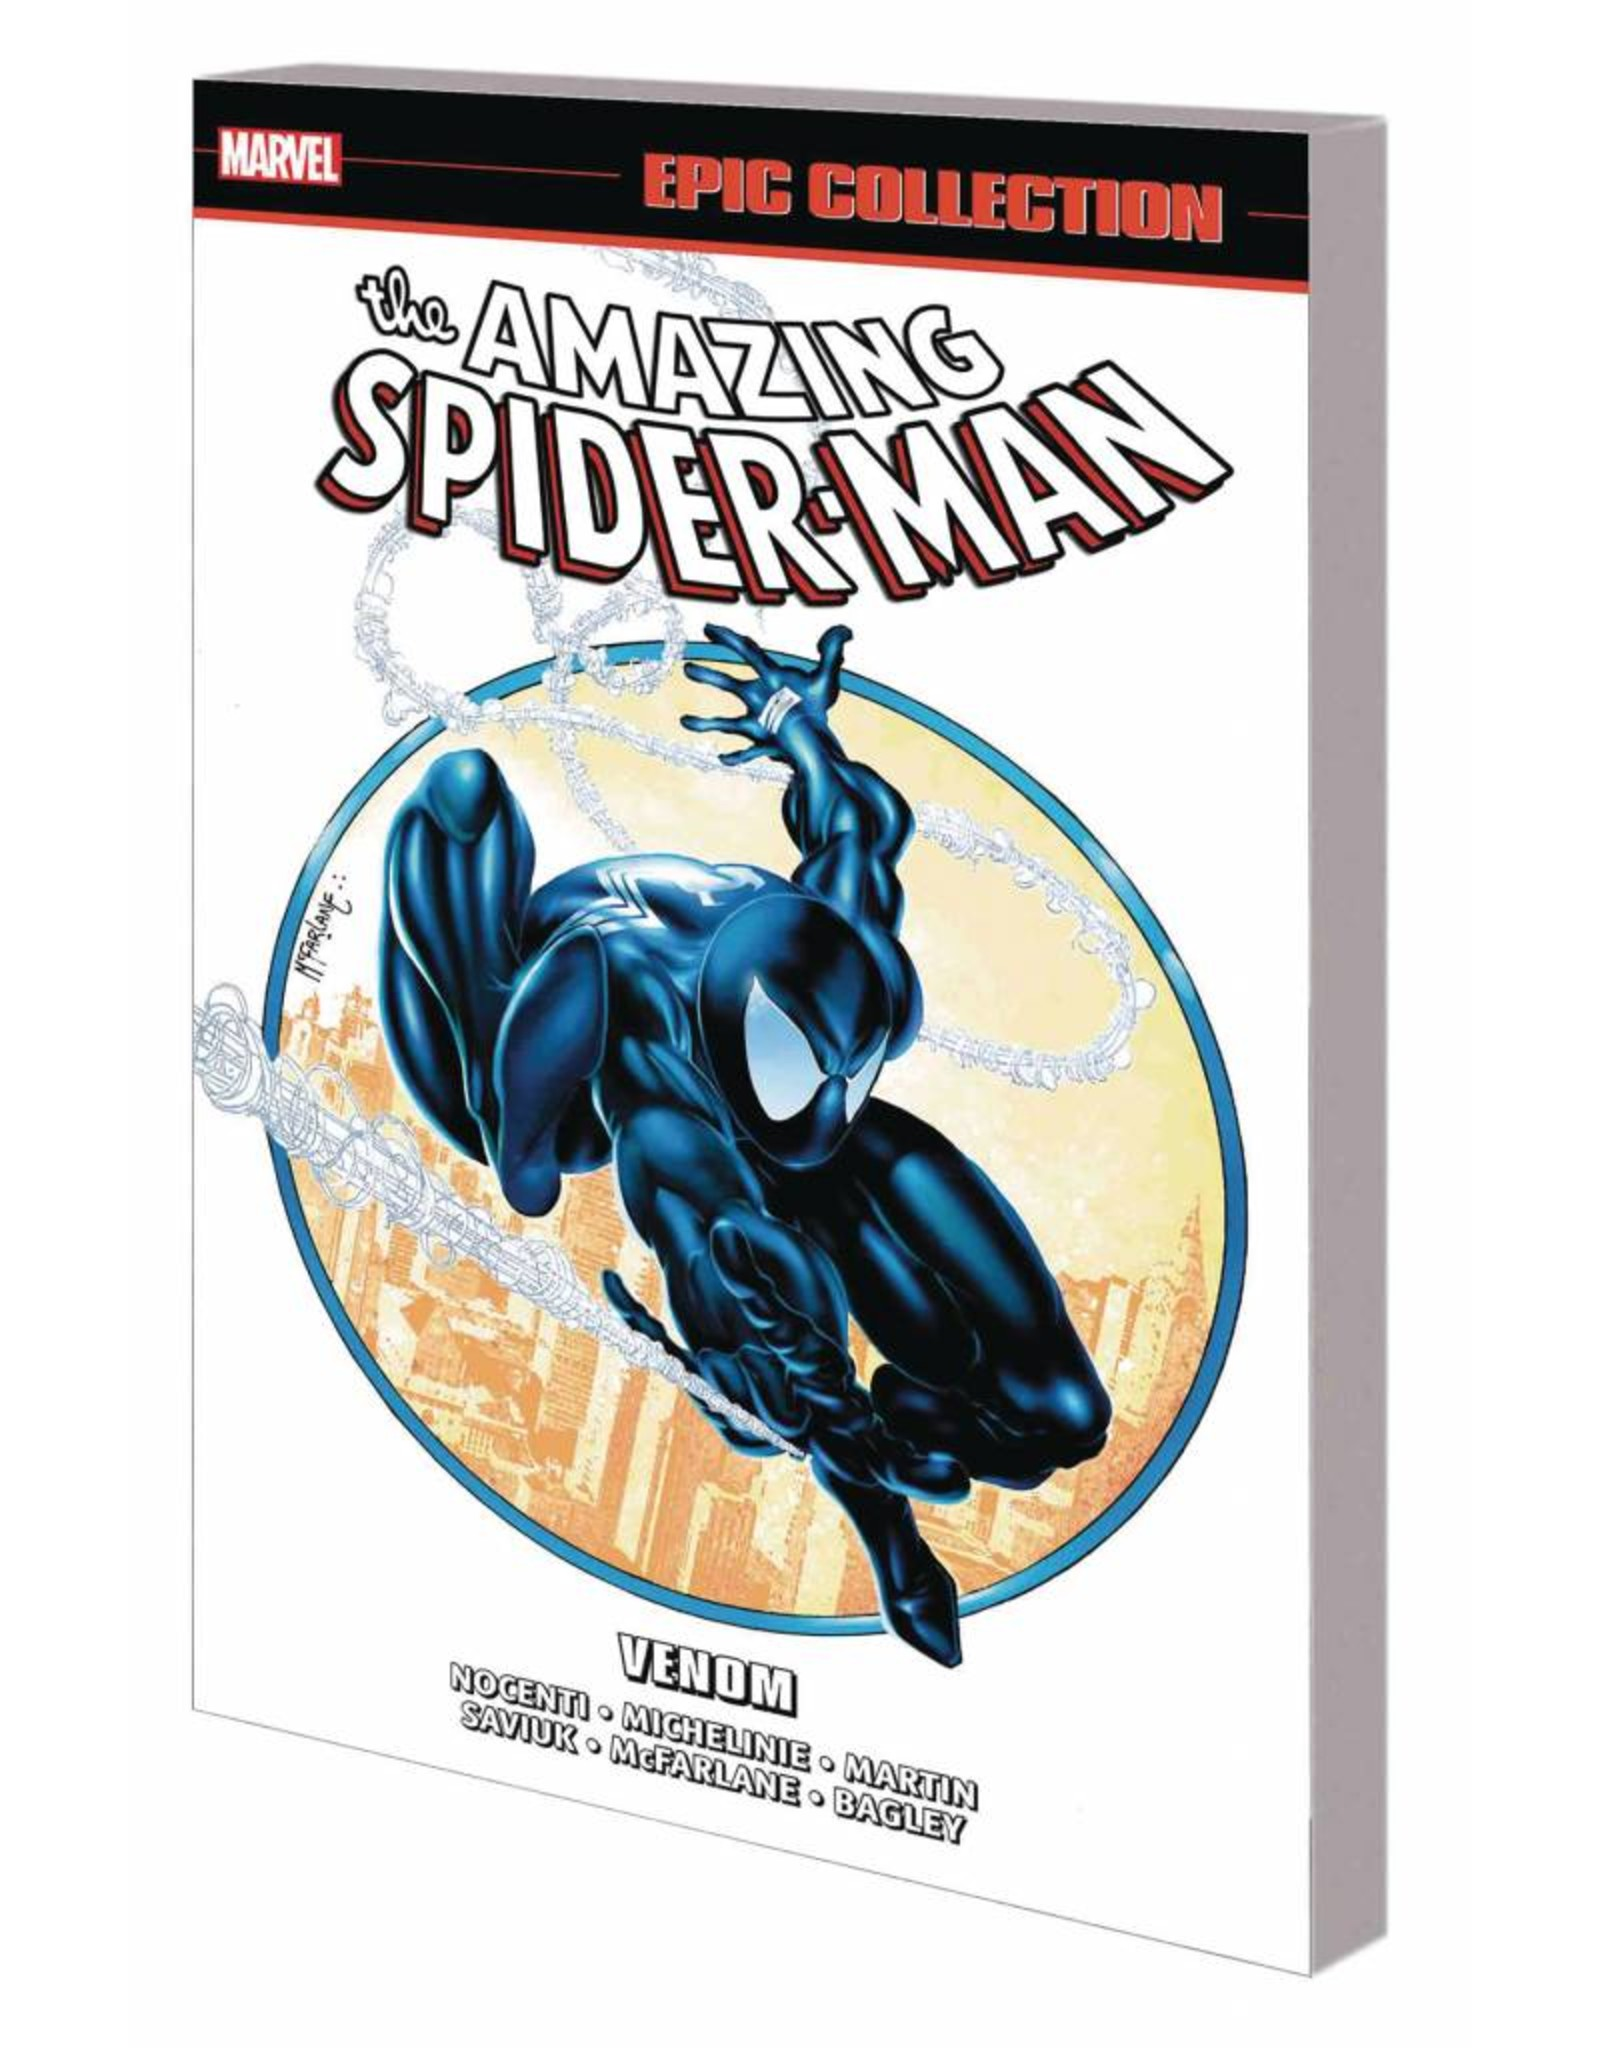 MARVEL COMICS AMAZING SPIDER-MAN EPIC COLLECTION TP VENOM